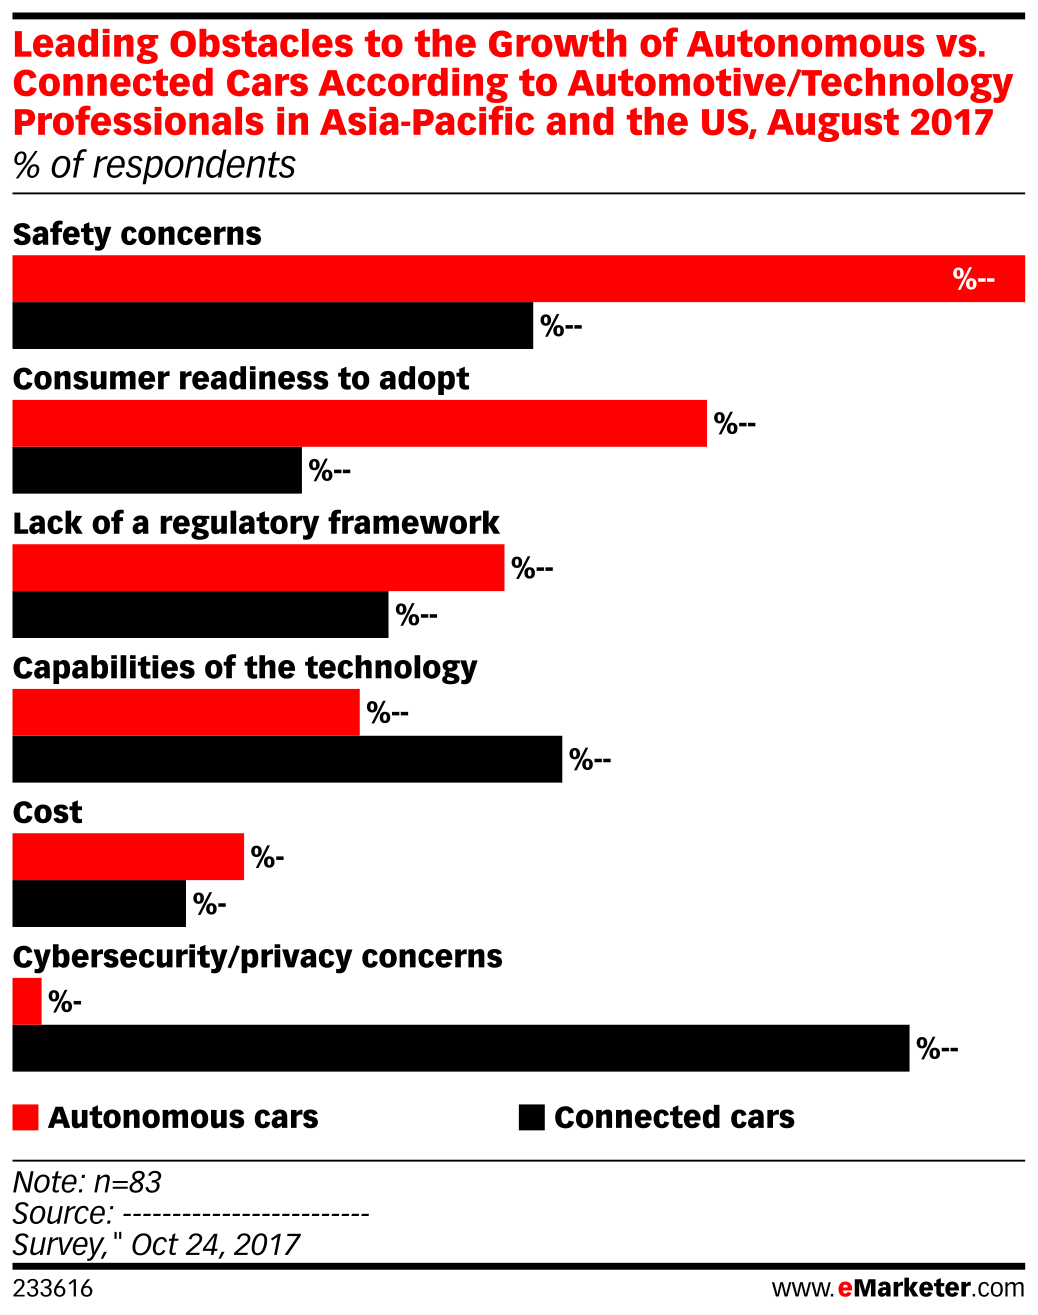 Leading Obstacles to the Growth of Autonomous vs. Connected Cars According to Automotive/Technology Professionals in Asia-Pacific and the US, August 2017 (% of respondents)